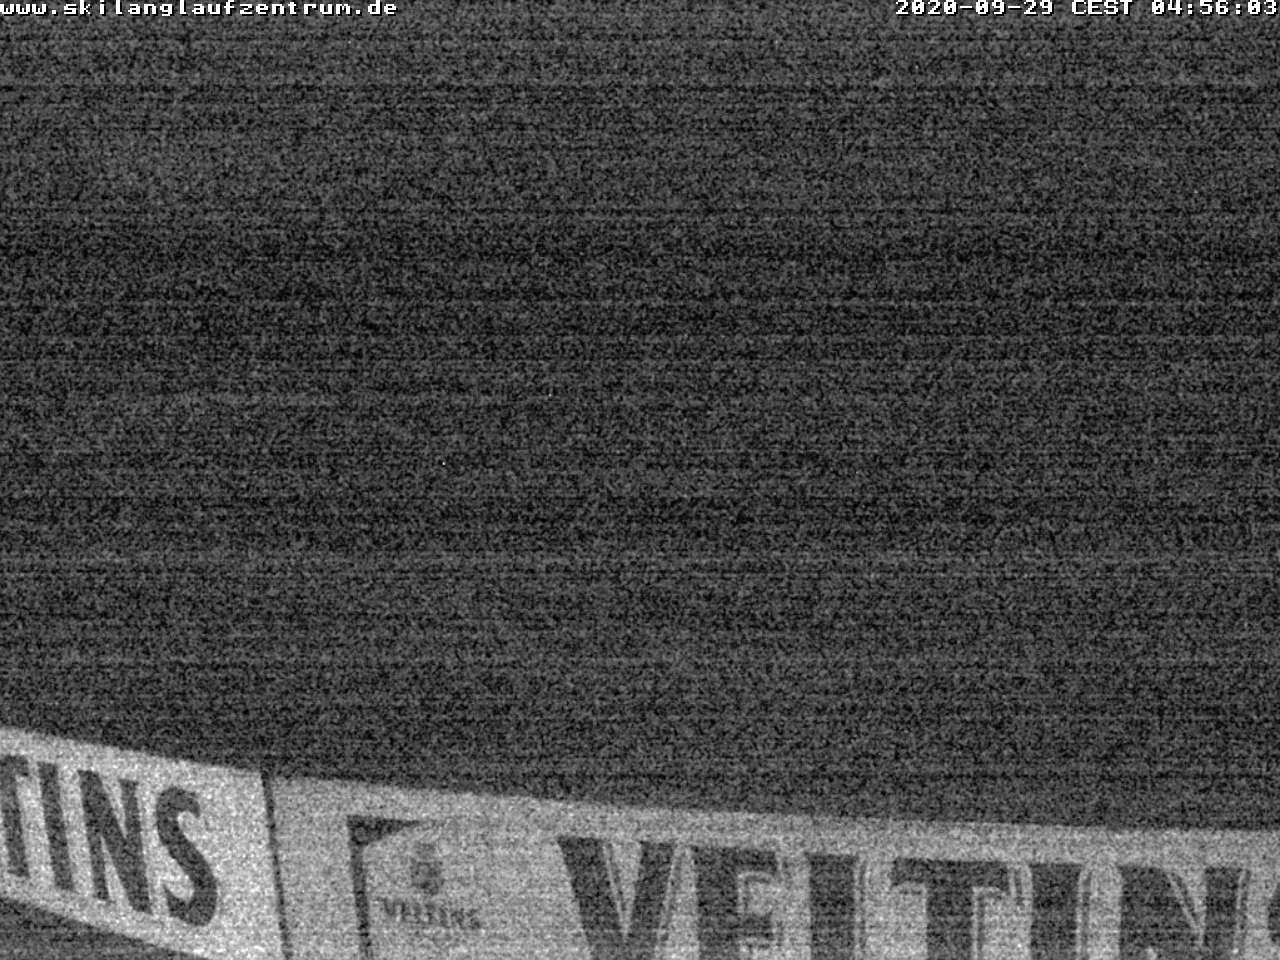 Webcam Skilanglaufzentrum in Westfeld im Sauerland